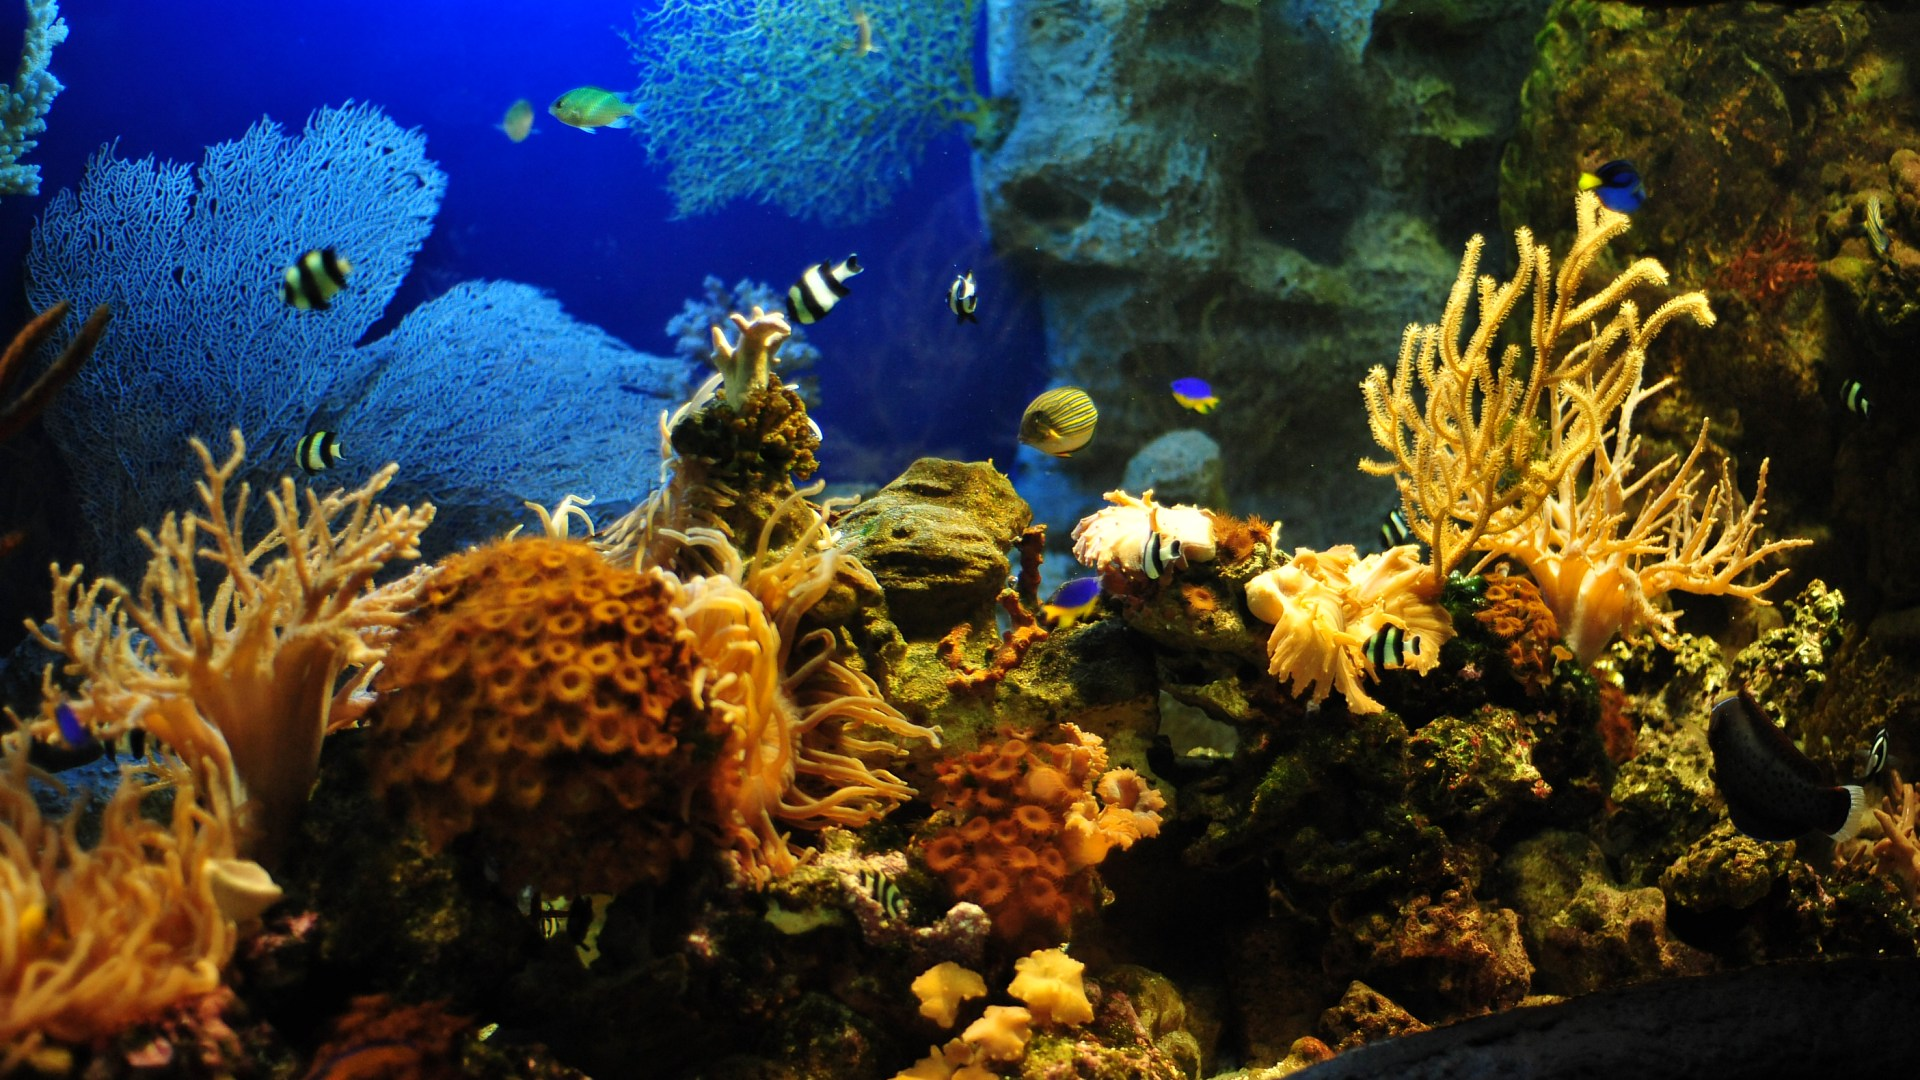 aquarium wallpaper hd - photo #27